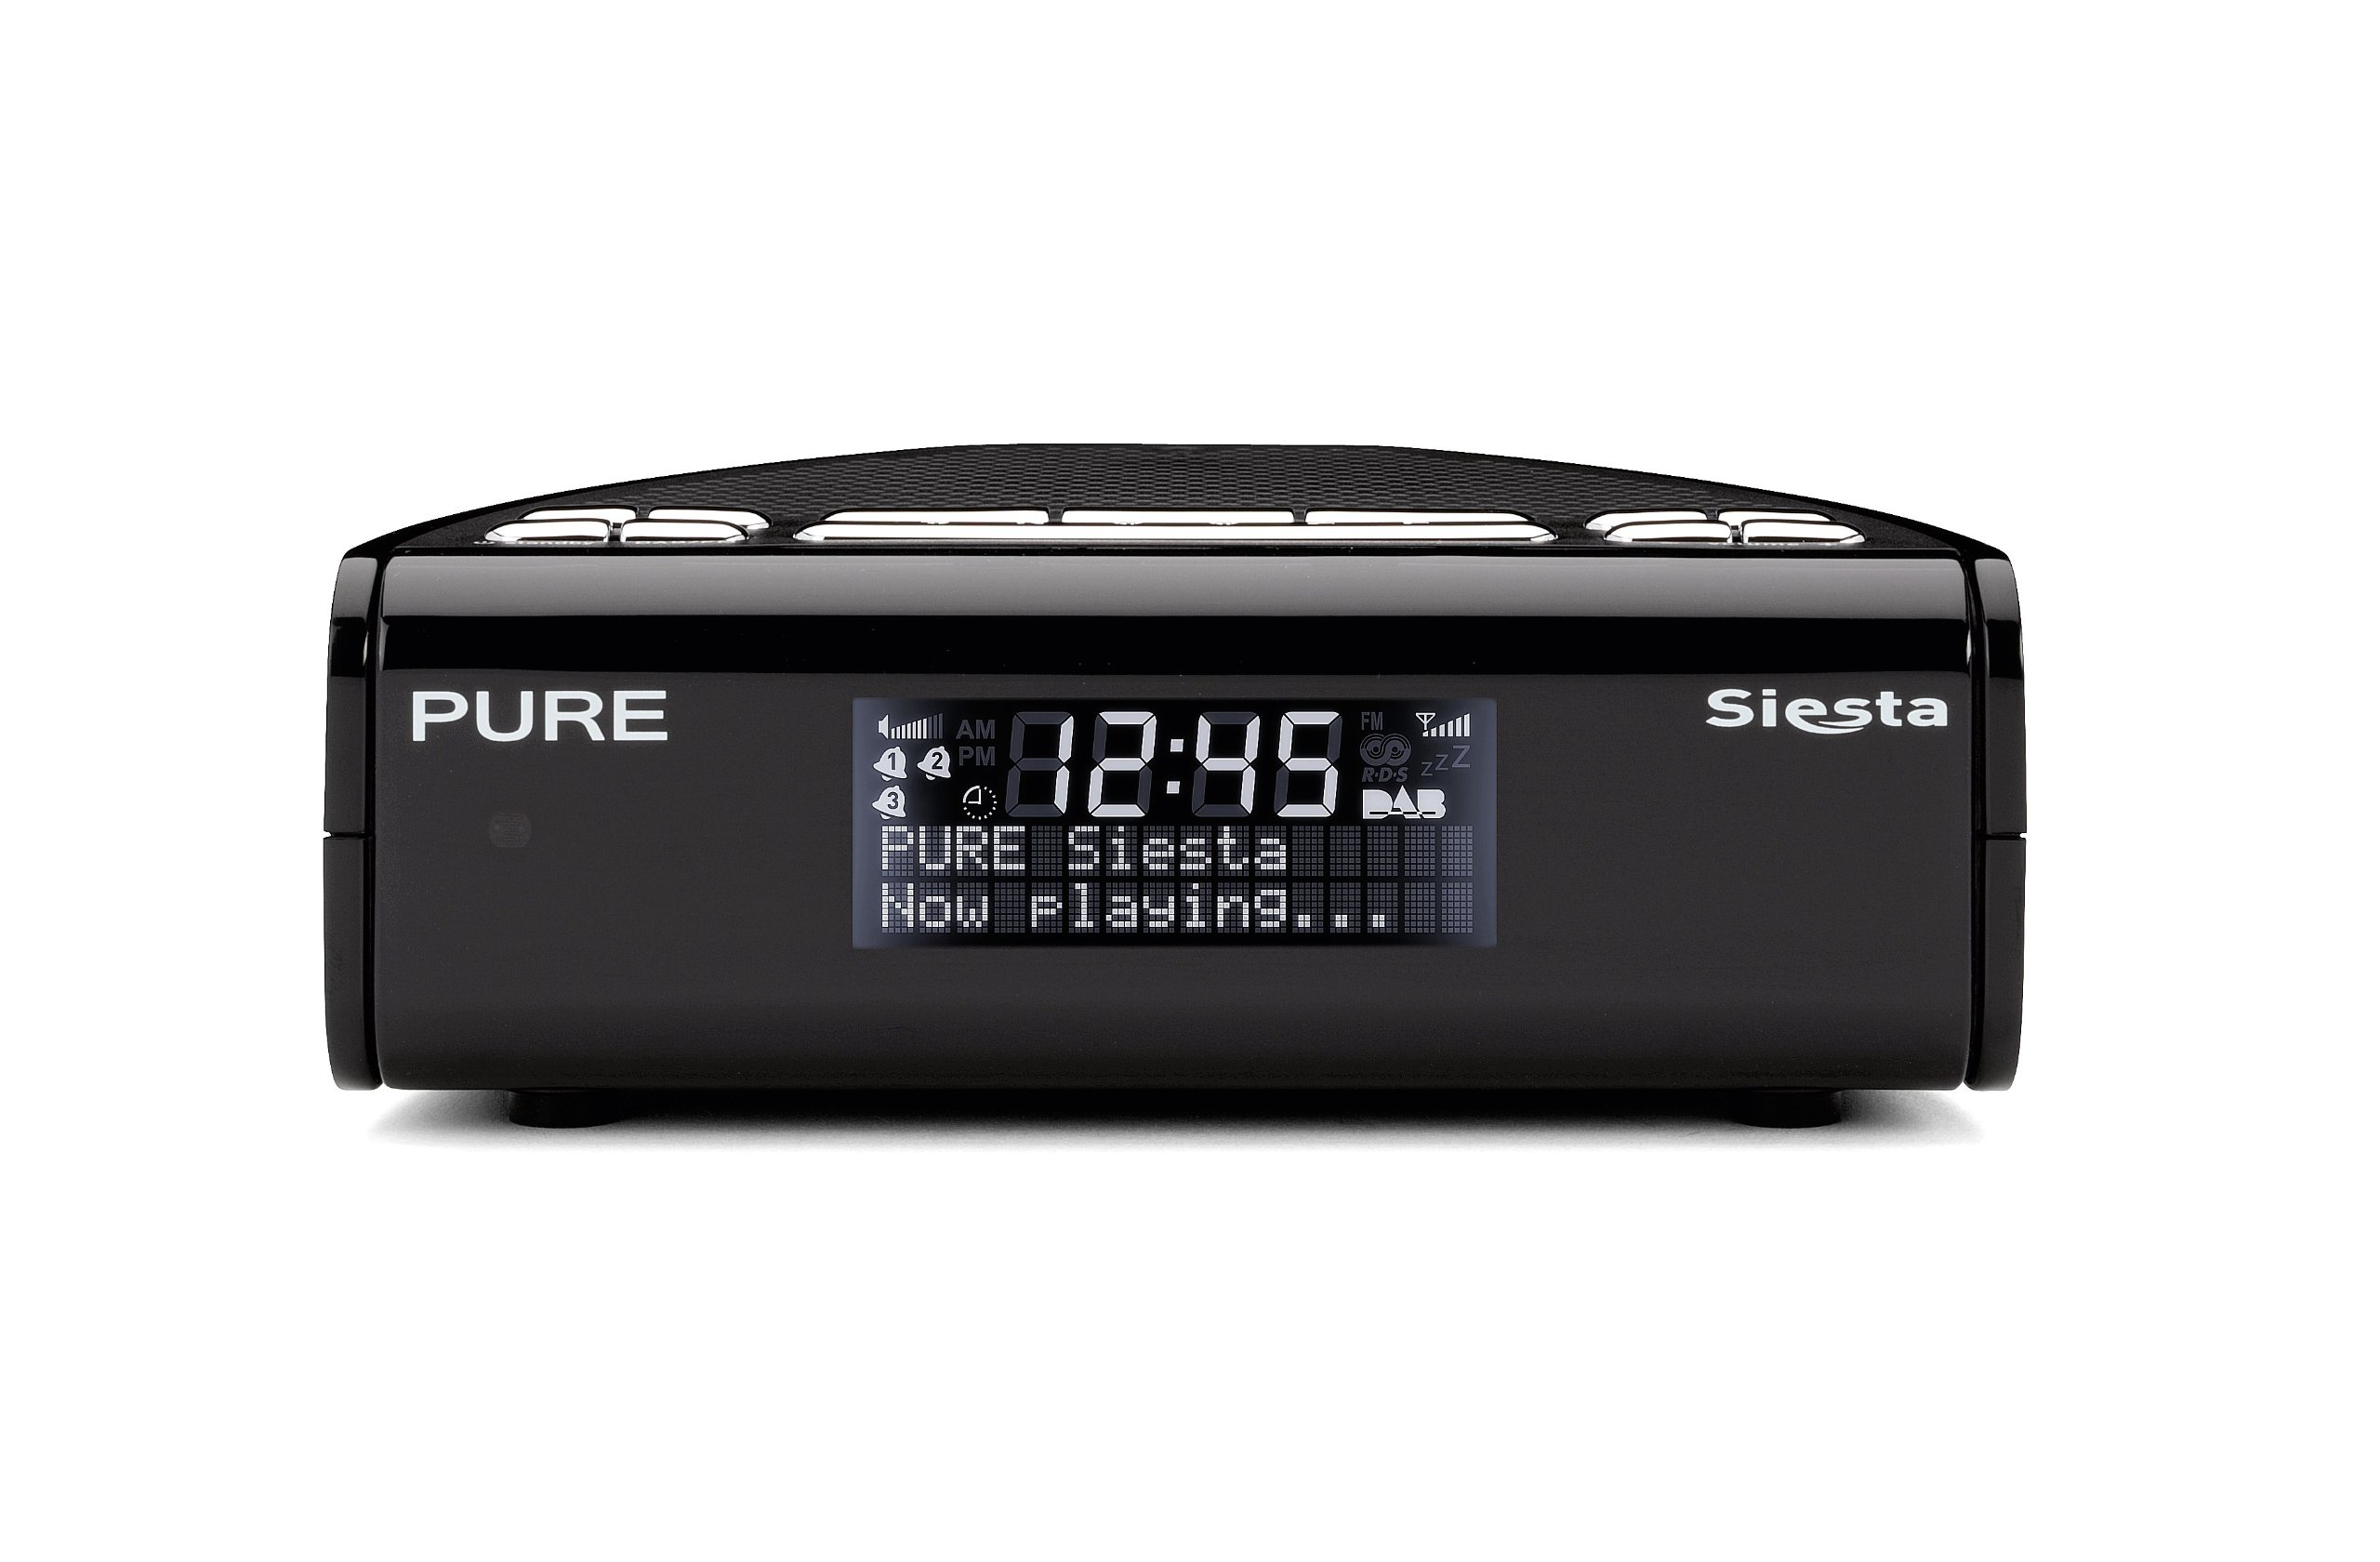 pure siesta dab fm alarm clock radio ebay. Black Bedroom Furniture Sets. Home Design Ideas